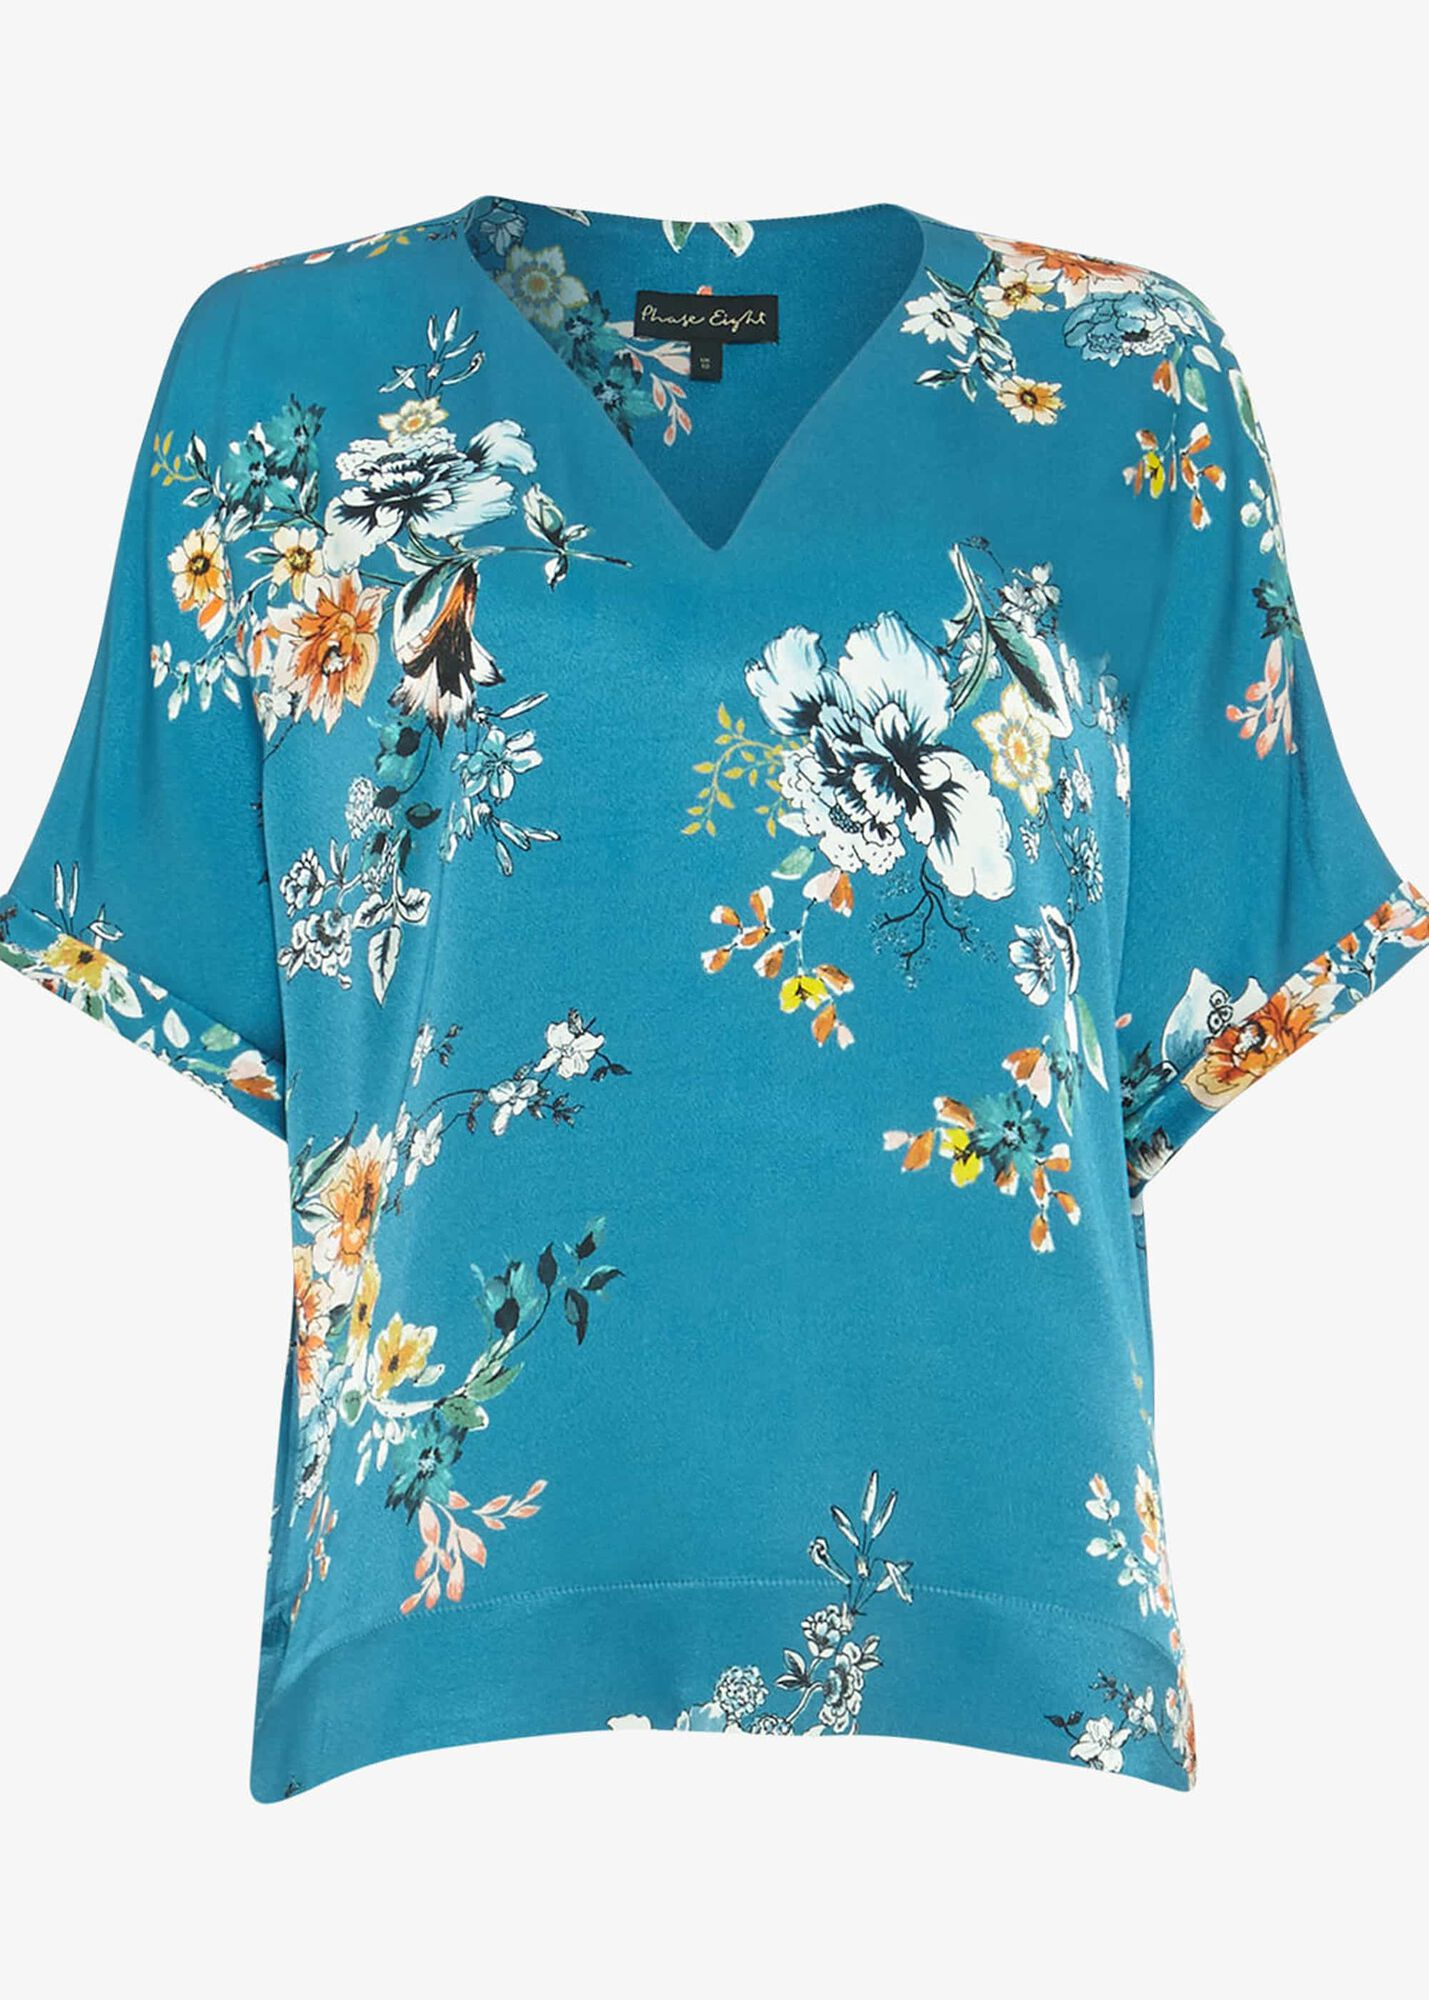 e44a2d22453e32 Zadie Floral Tie Hem Blouse. Previous Next. Phase Eight